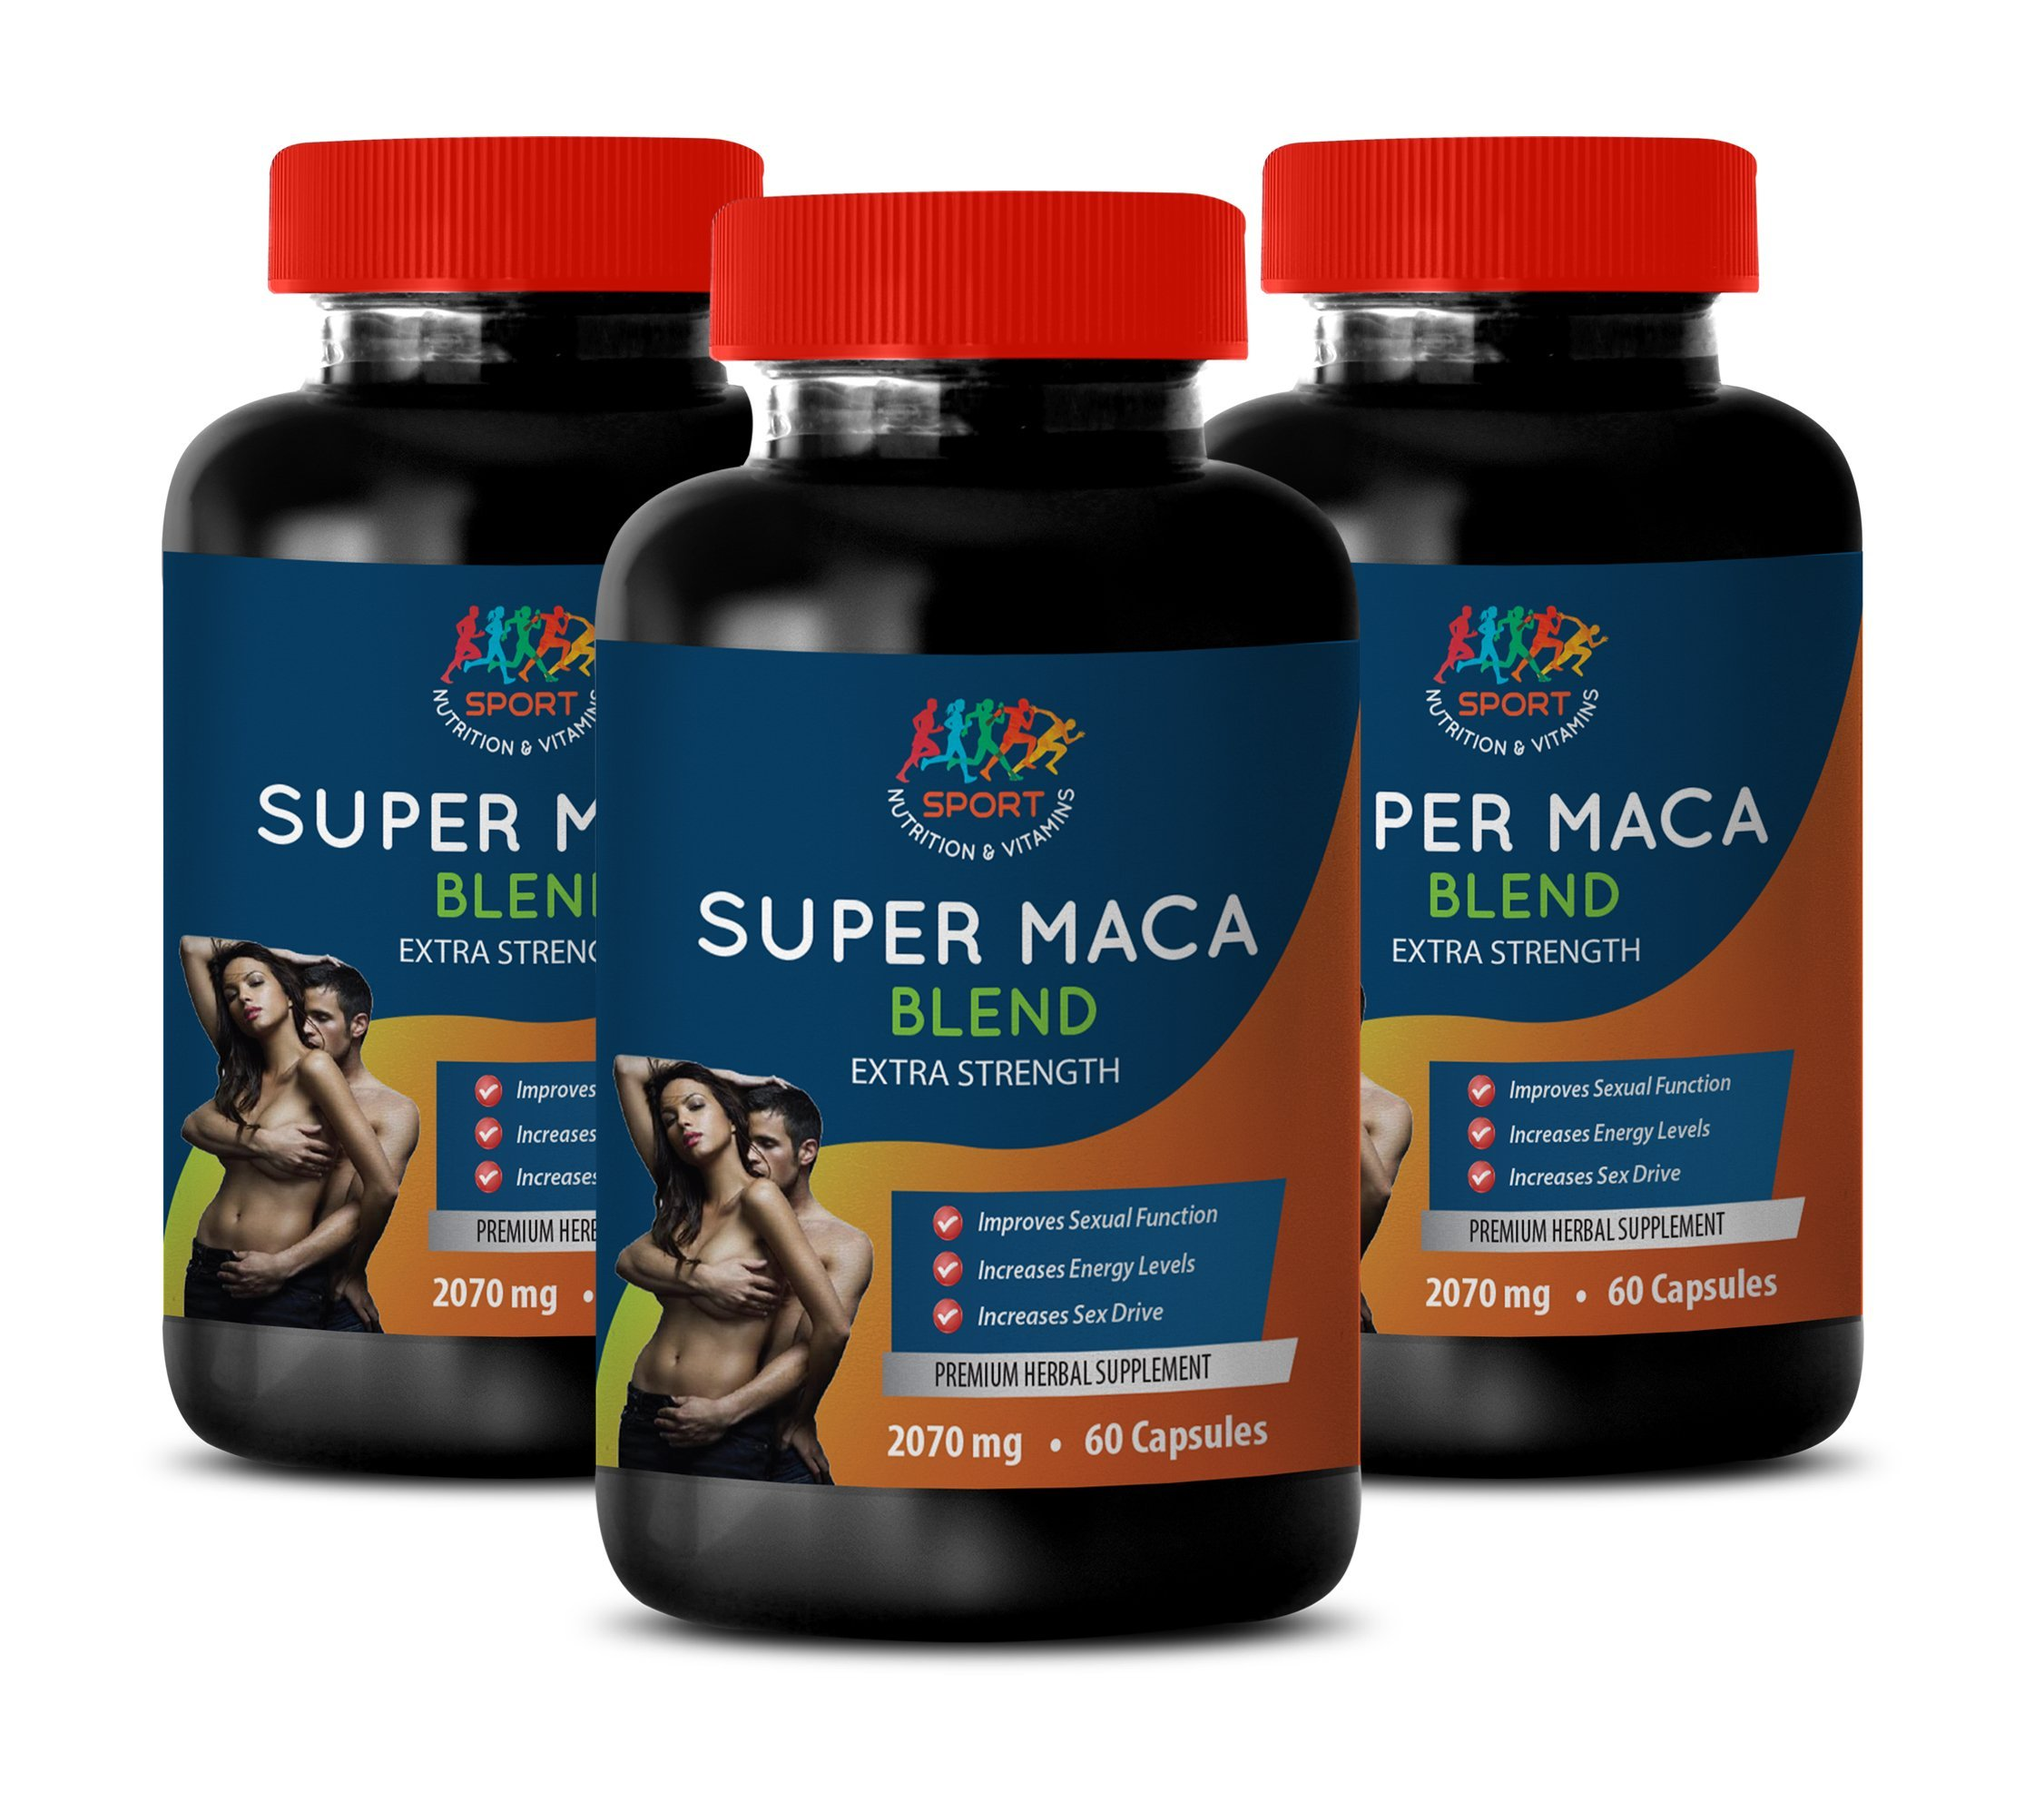 Men Sexual Stamina Supplement - Super MACA Blend 2070 MG - Extra Strength - yohimbe Supplement for Men - 3 Bottles 180 Capsules